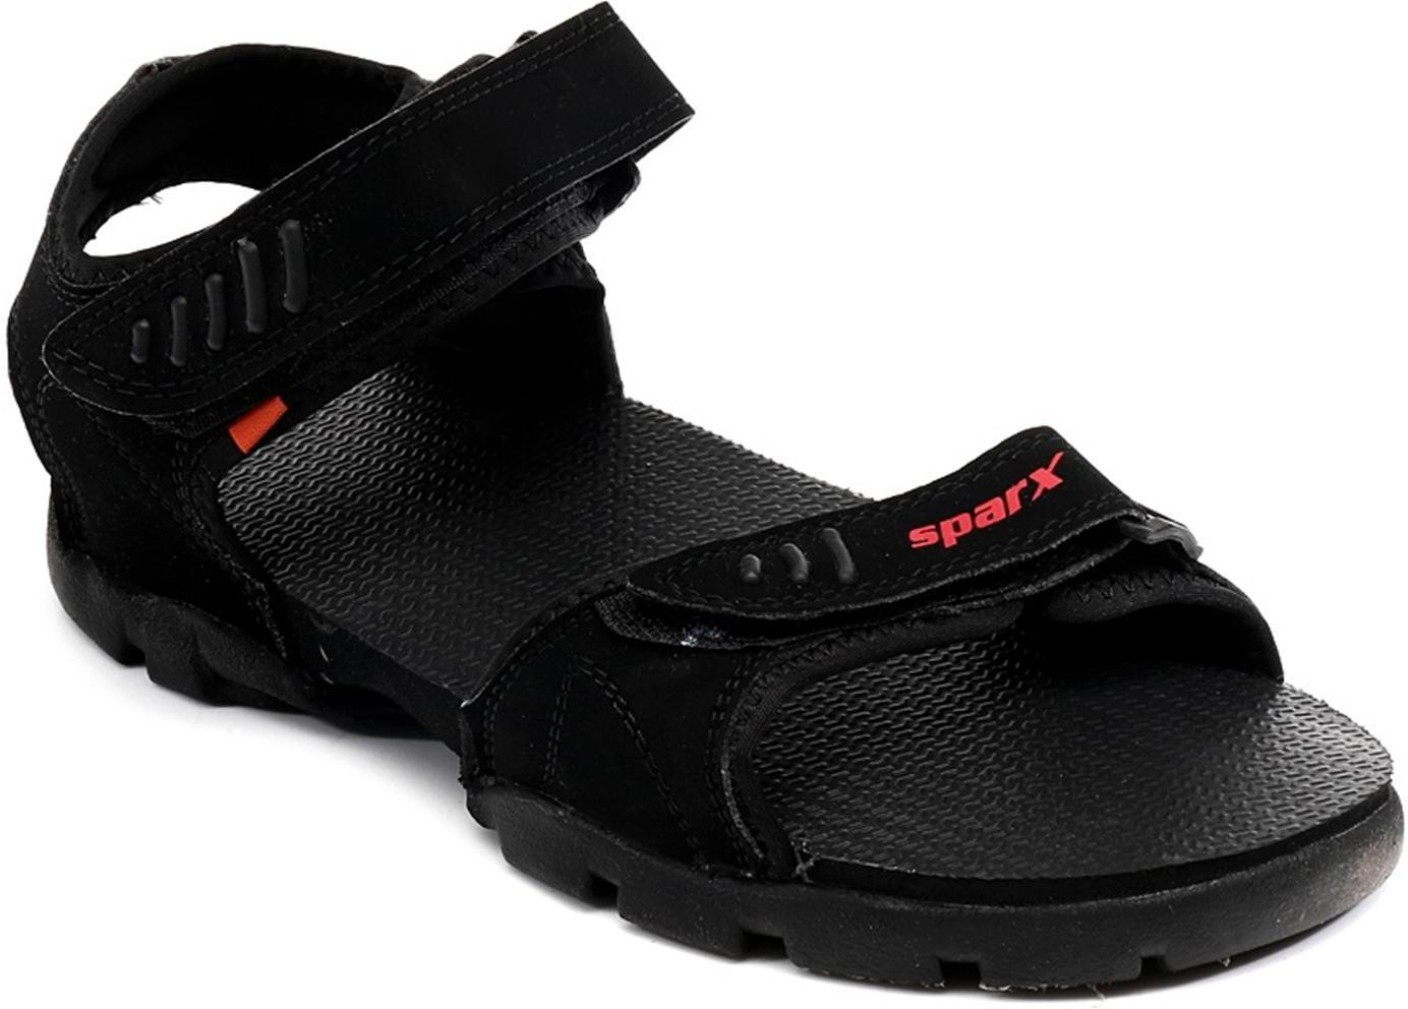 Cm Shoe Size In India